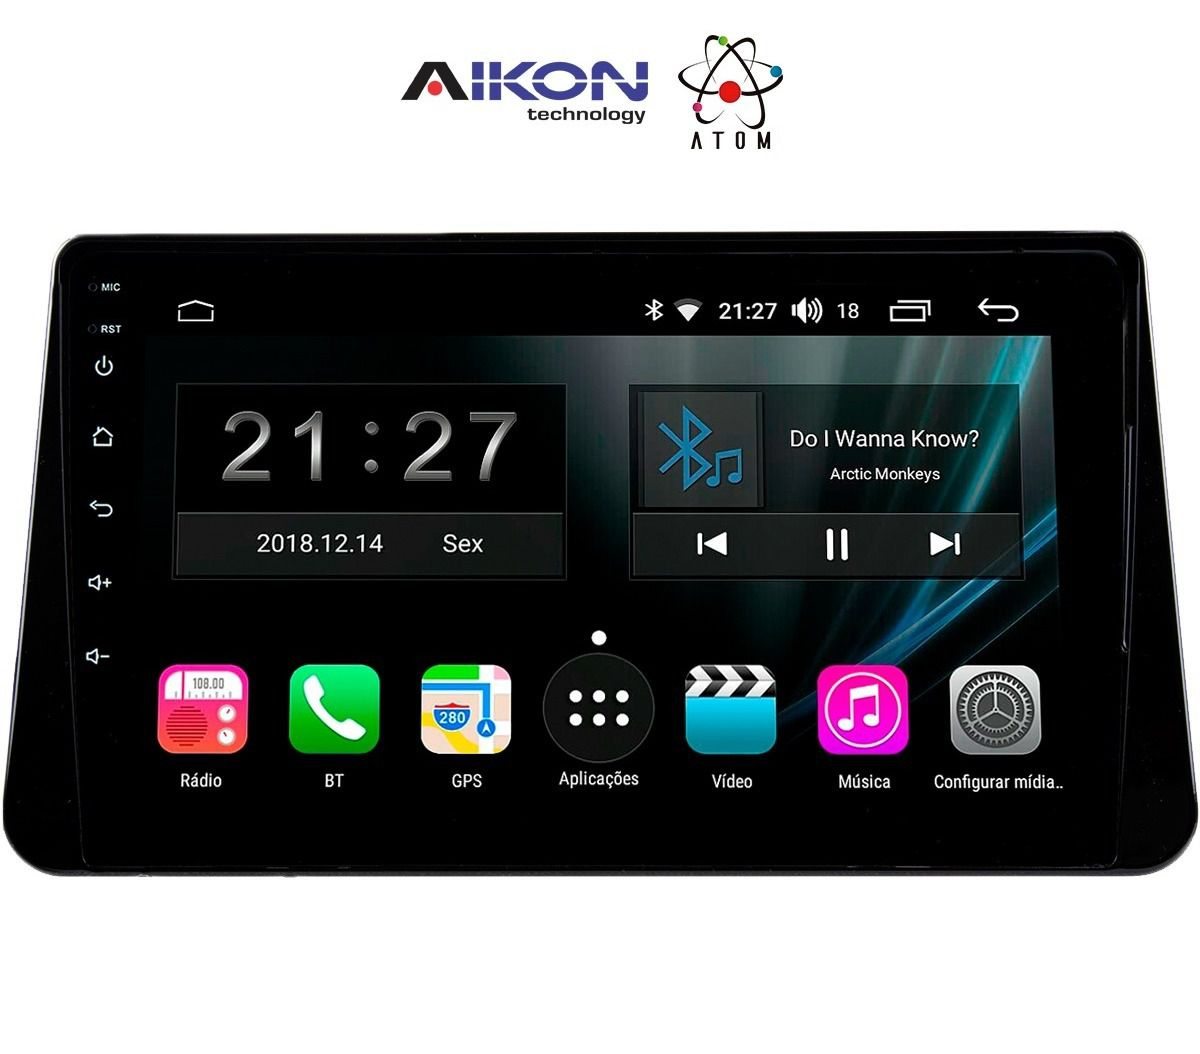 Central Multimidia Nissan Kicks Aikon ATOM- Tela Tela 8 Polegadas - TV Digital FULL HD - GPS Bluetooth MP3 USB - 2 Câmera de Ré + Frontal - Sistema Android 8.1